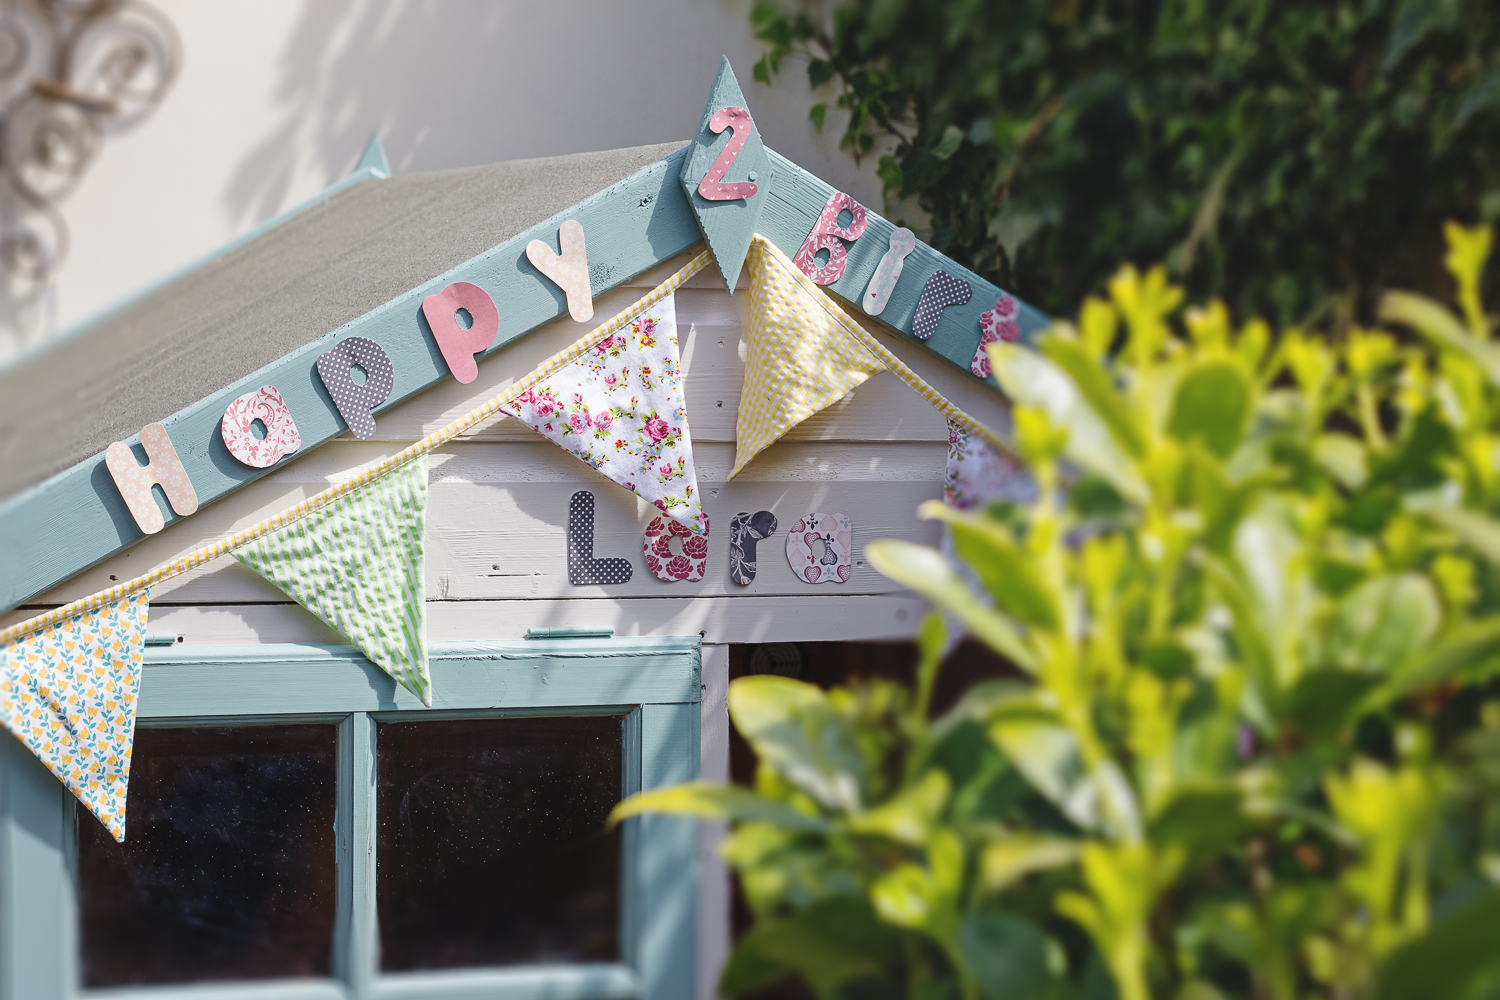 A magical birthday present in the form of a beautiful wendy house for a two year old girl